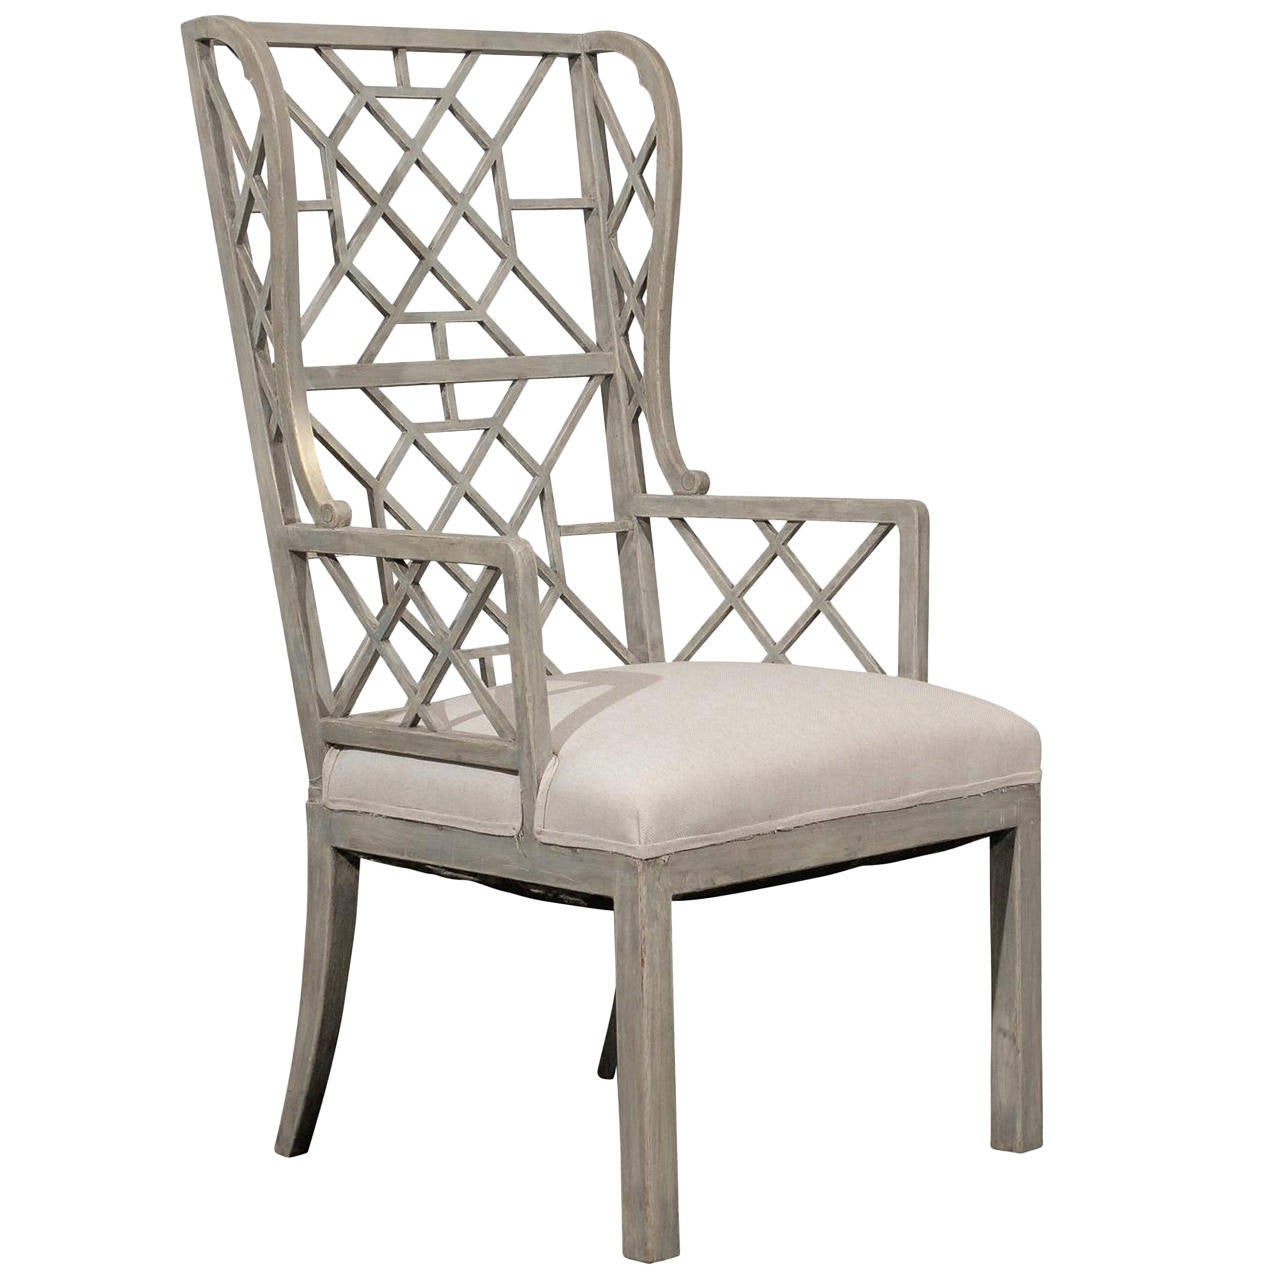 Chinese Chair Chinese Chippendale Light Grey Or Blue Painted Wood High